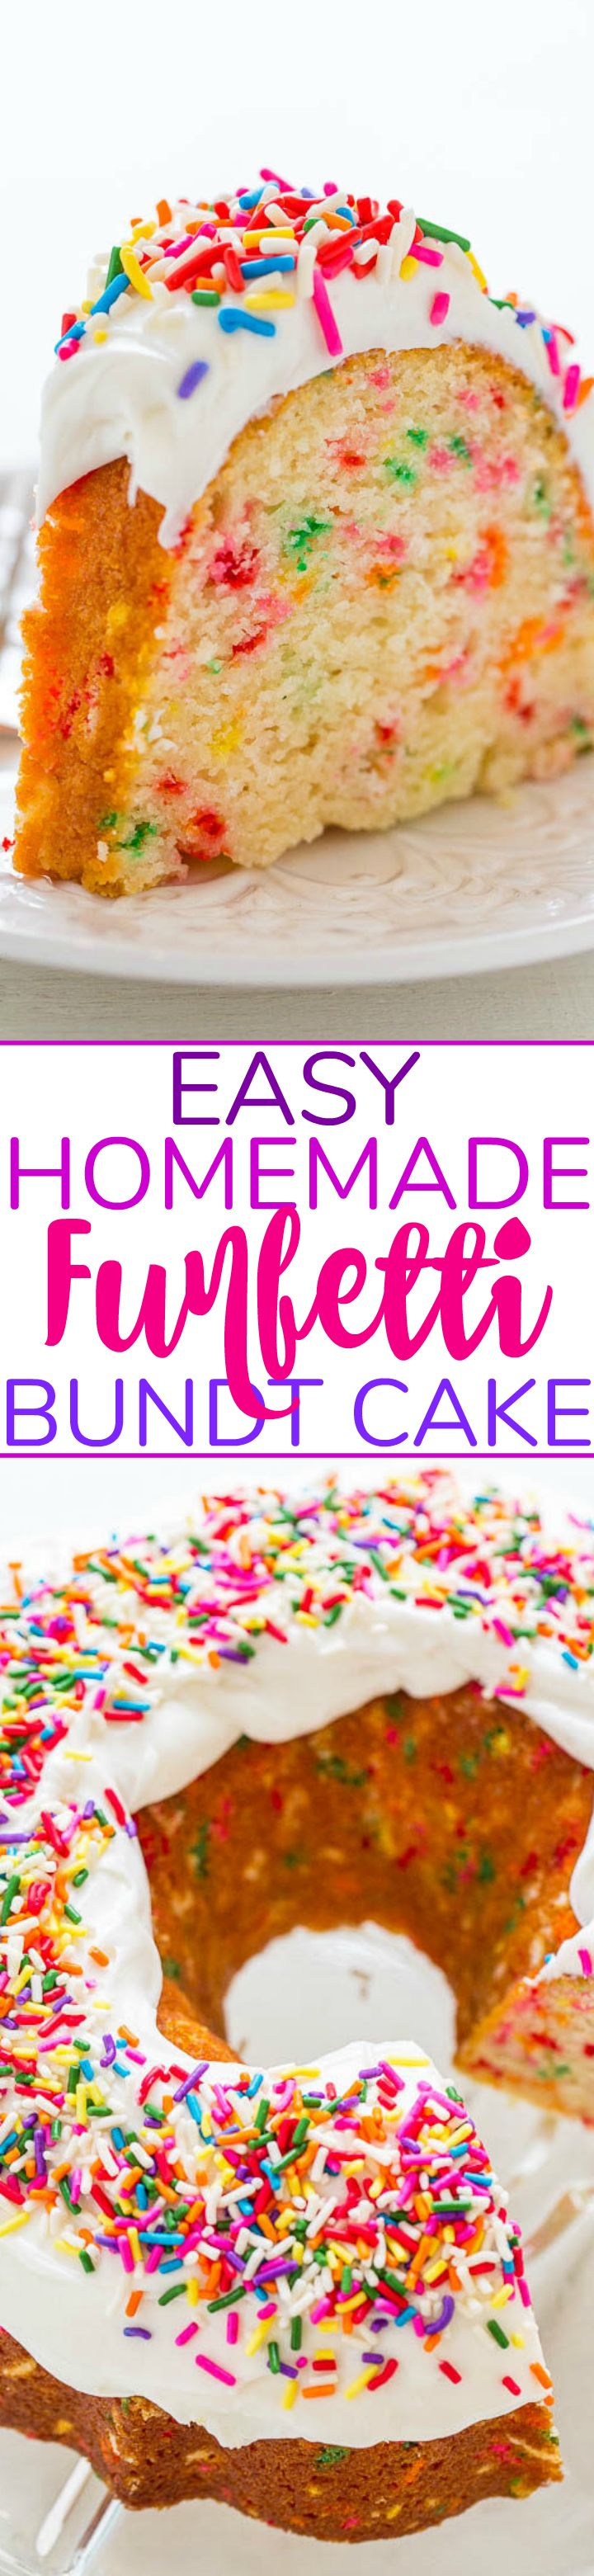 Easy Homemade Funfetti Bundt Cake - NO cake mix in this 100% HOMEMADE funfetti cake that's loaded with sprinkles and tastes amazing!! Fast, EASY, and the BEST scratch funfetti cake recipe!!